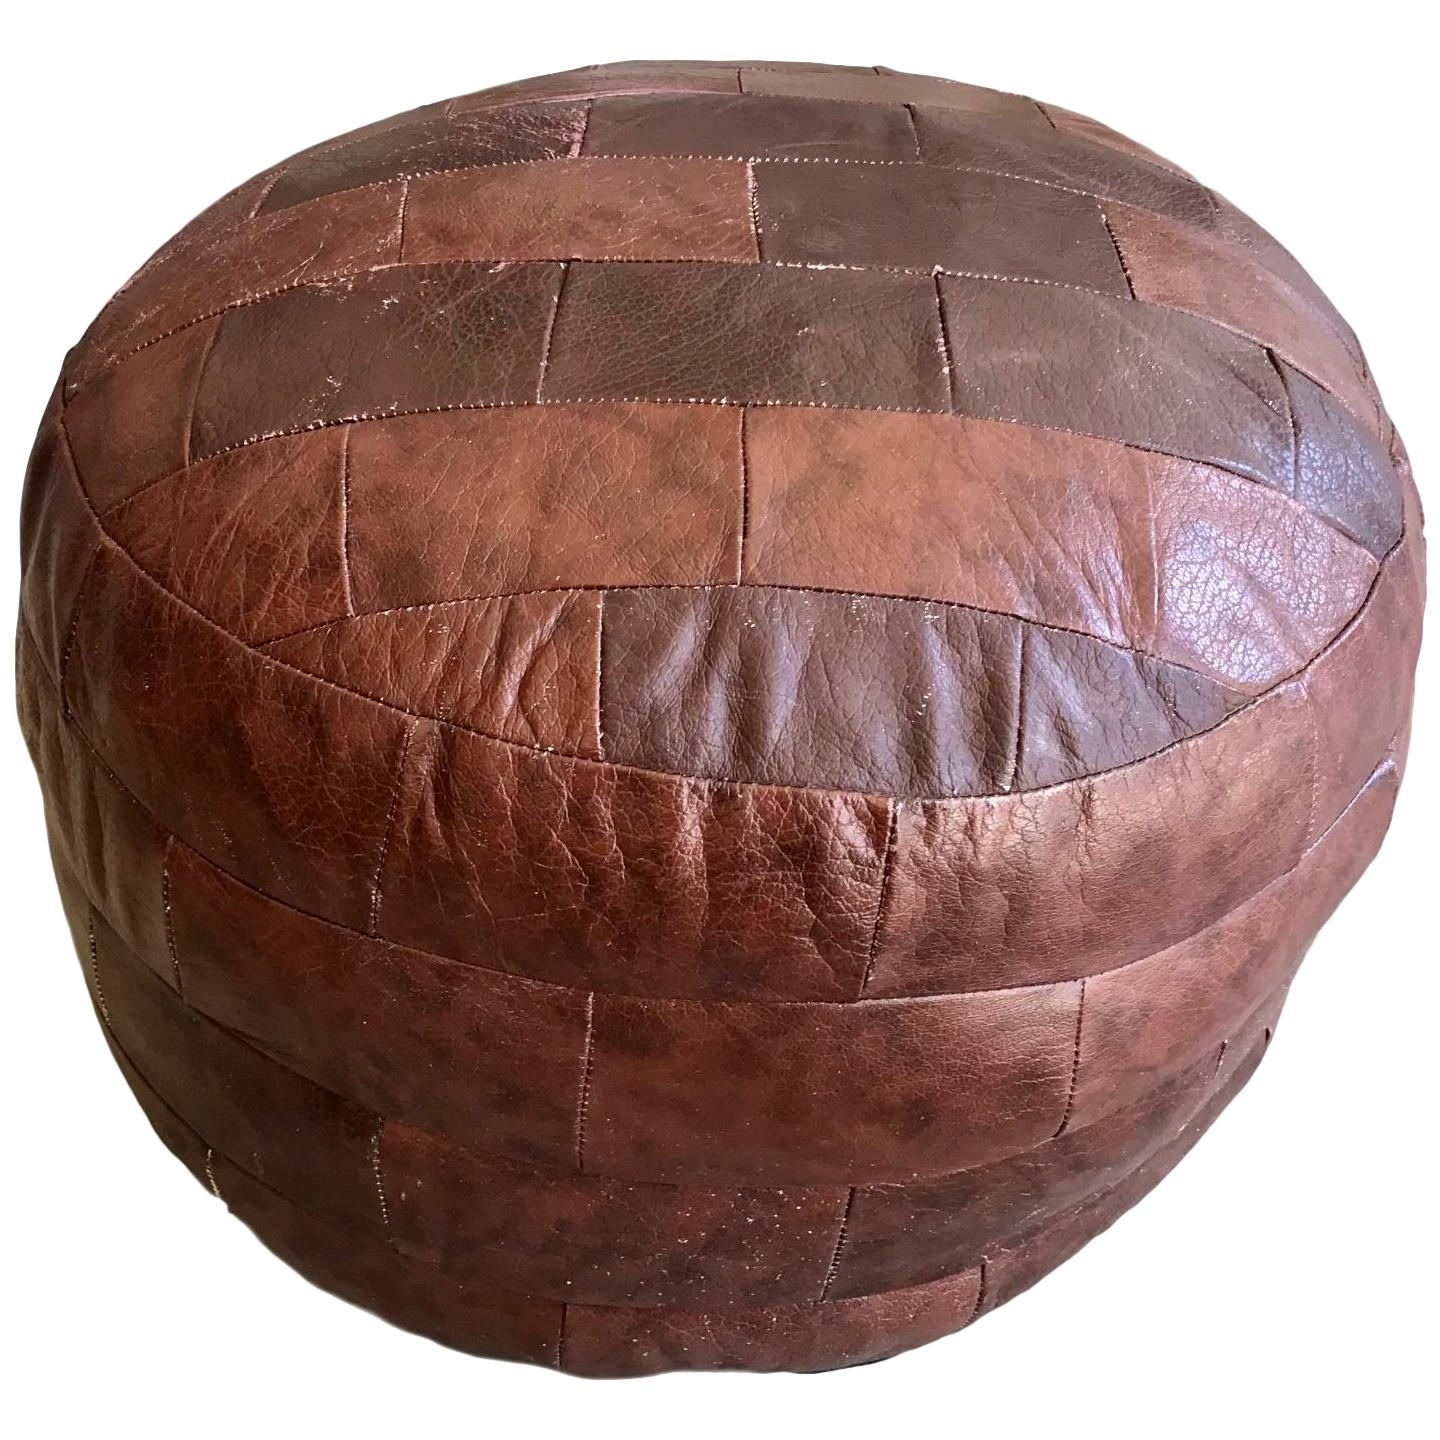 De Sede Patchwork Red Brown Leather Pouf